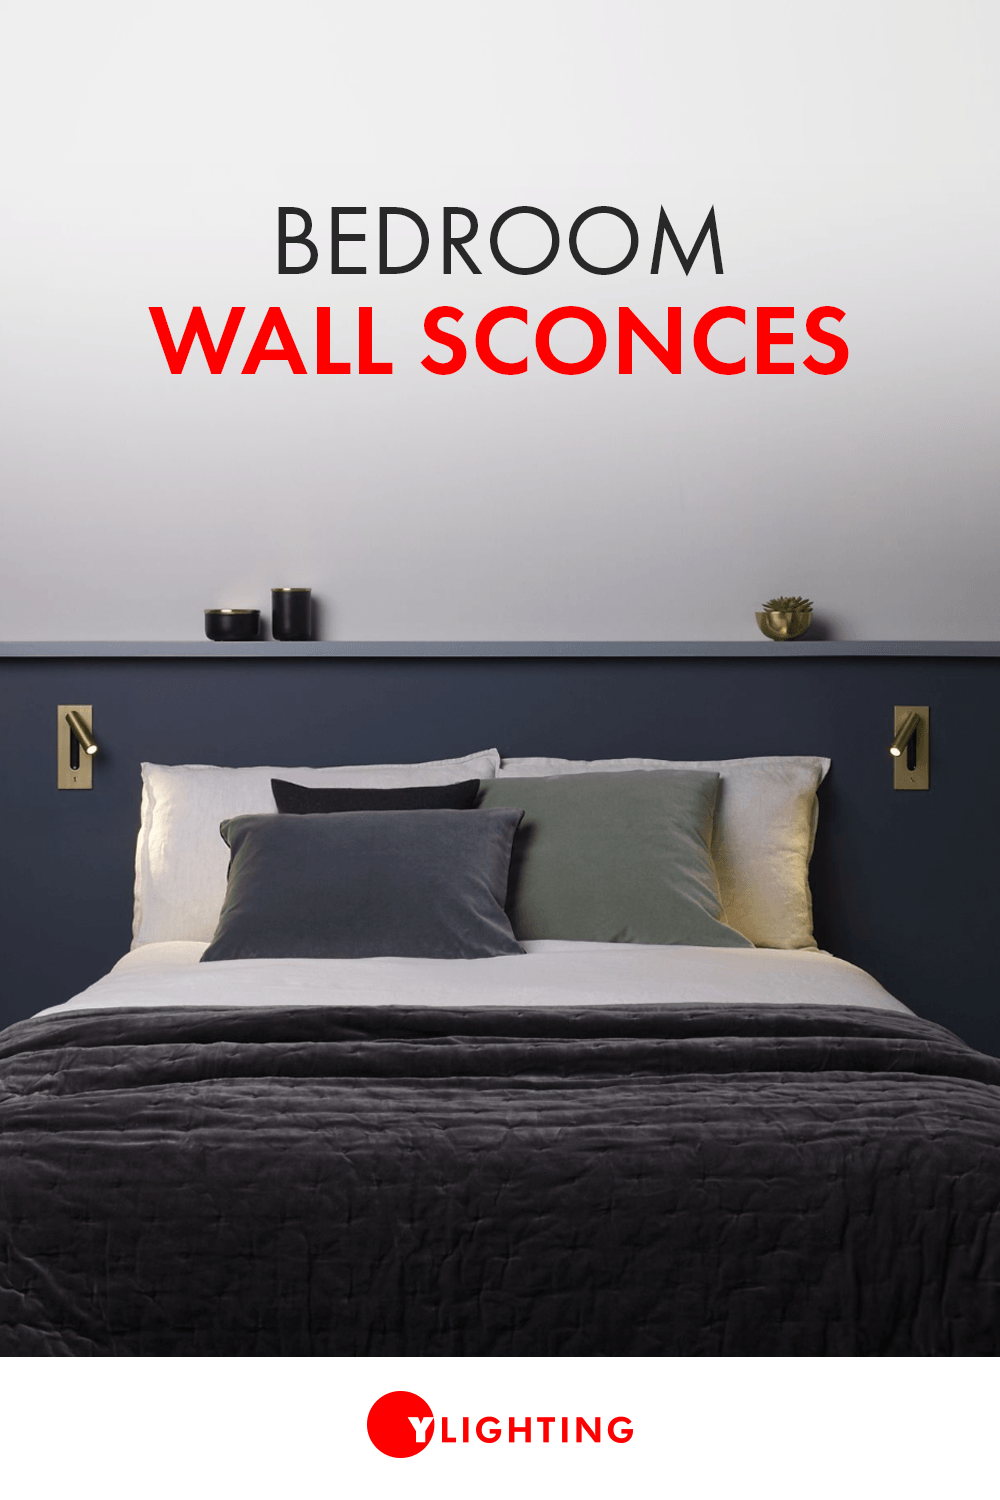 Best Bedroom Wall Sconces Modern Bedroom Design Wall Sconces Bedroom Modern Bedroom